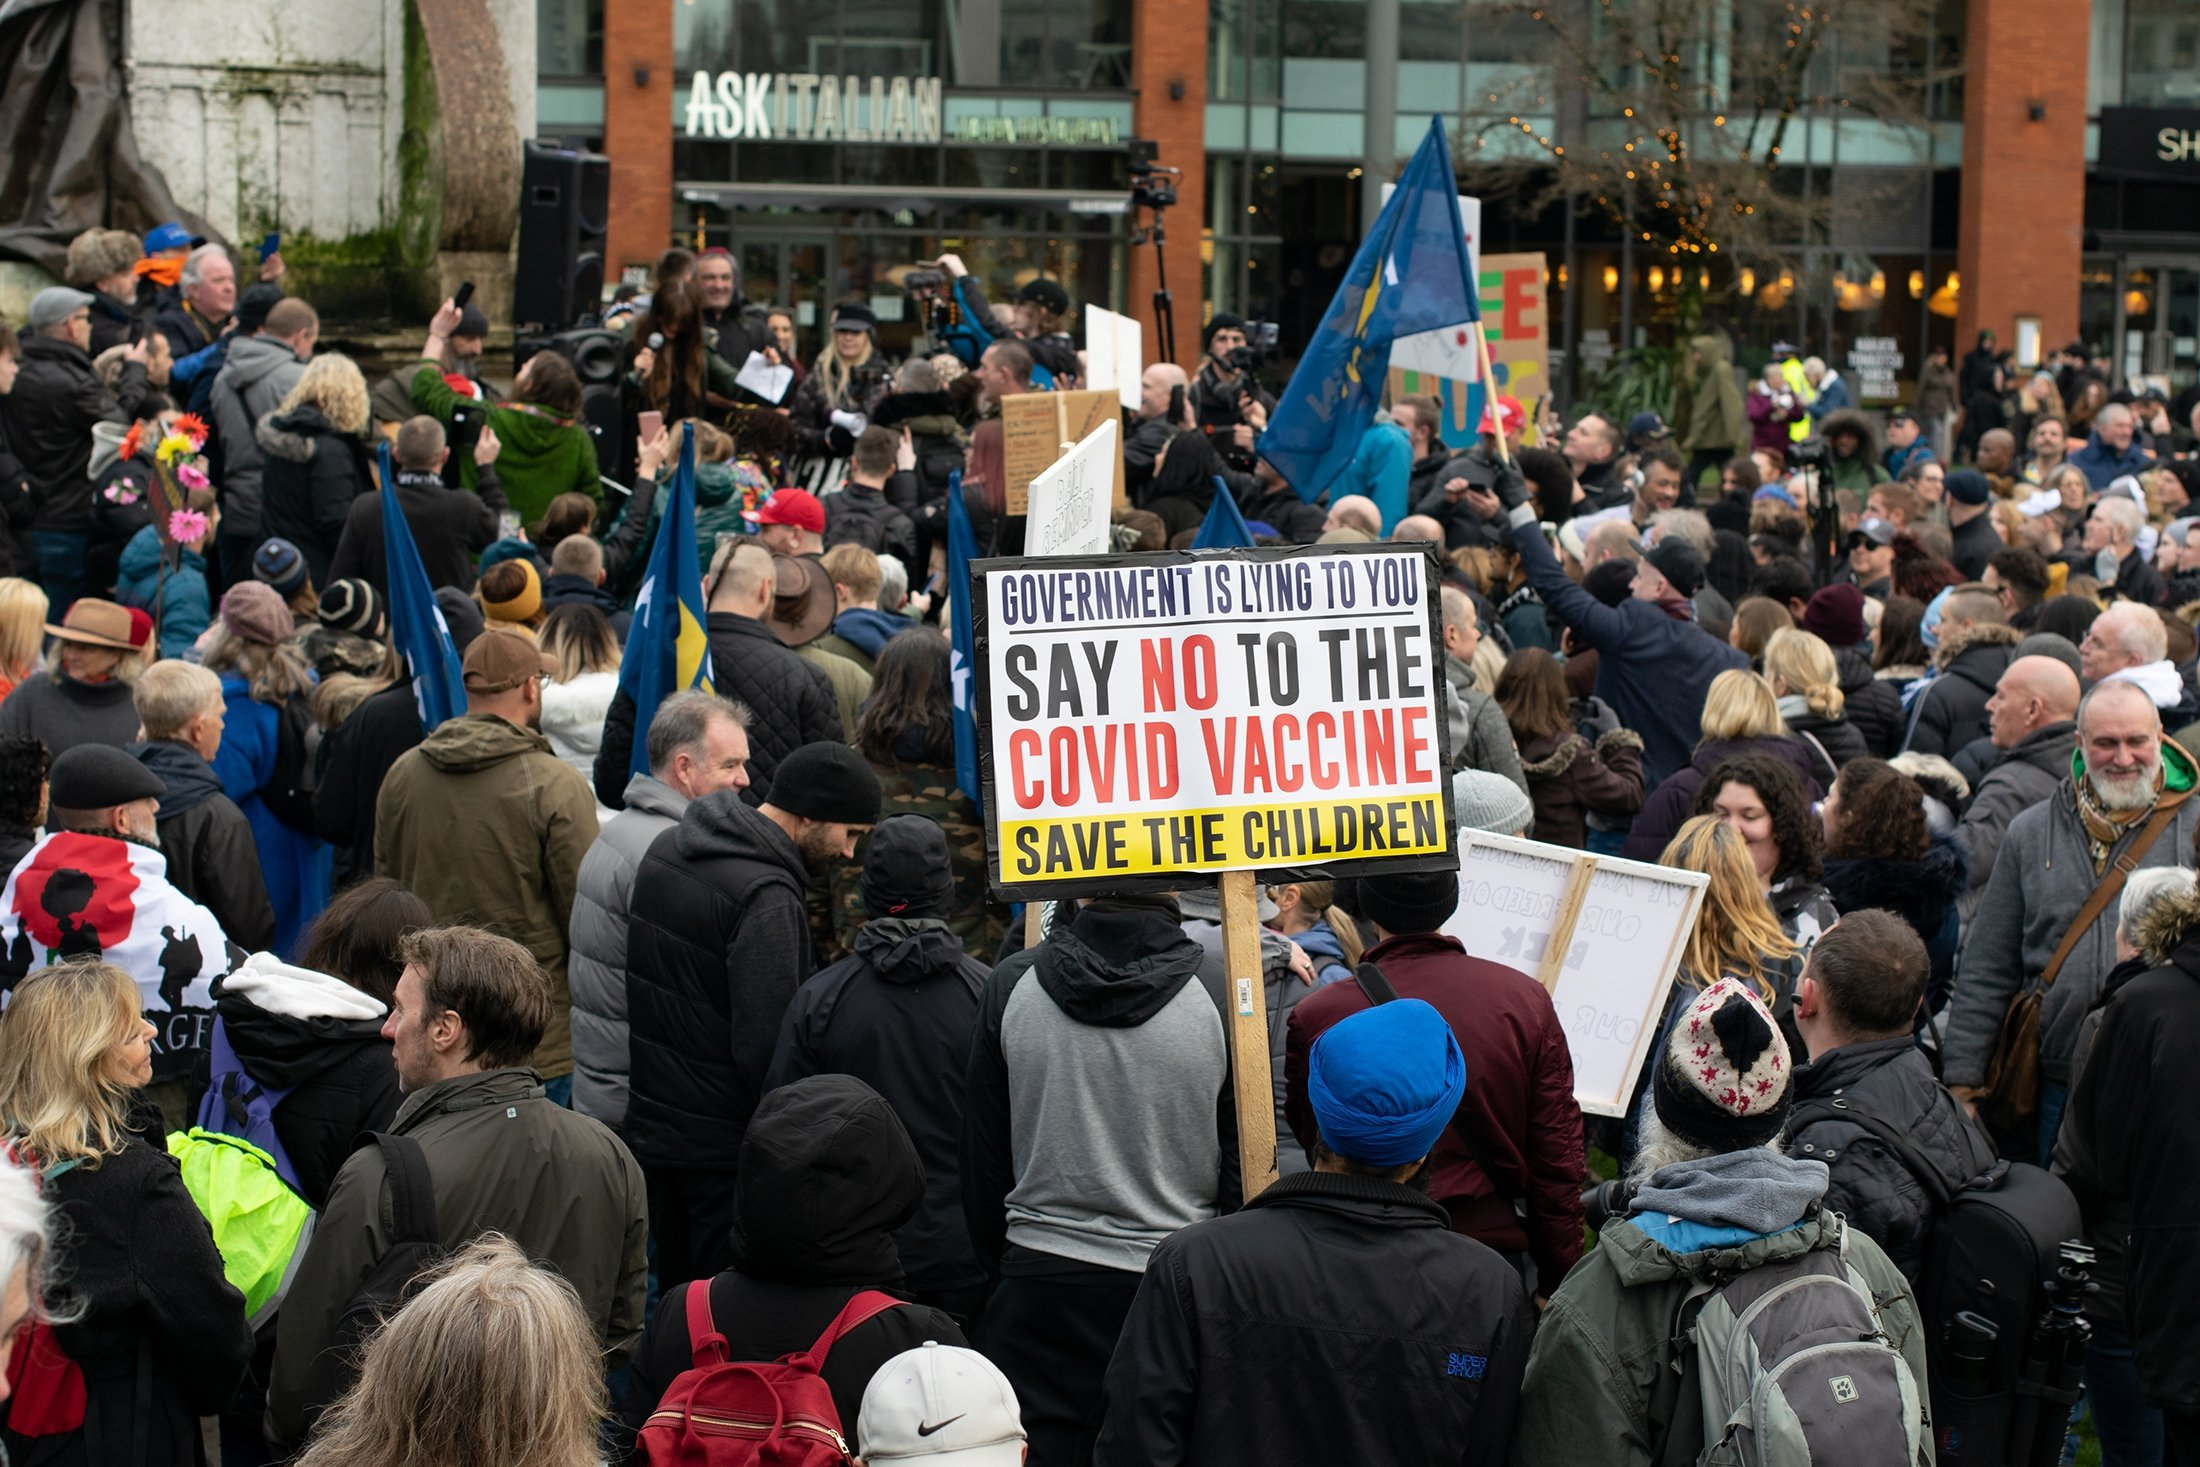 British people march against the COVID-19 vaccine in a 'Freedom Rally,' in Manchester, U.K., Dec.12, 2020. (Shutterstock Photo)